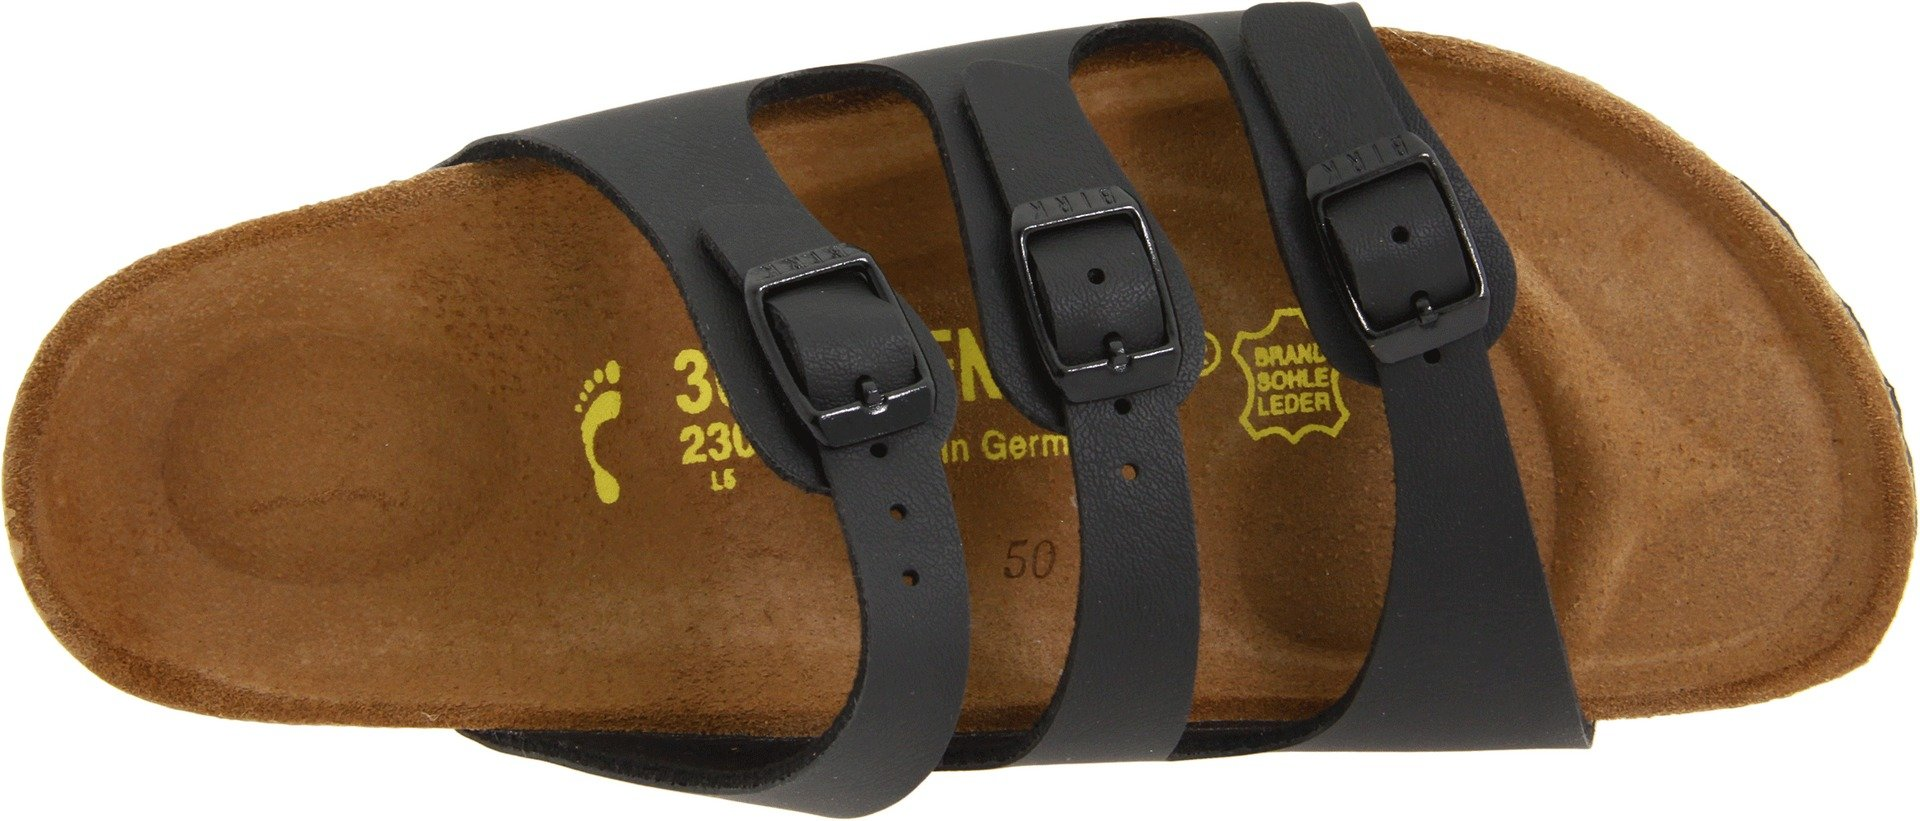 Birkenstock Women's Florida Sandals,Black,38 N EU / 7-7.5 AA(N) US by Birkenstock (Image #7)